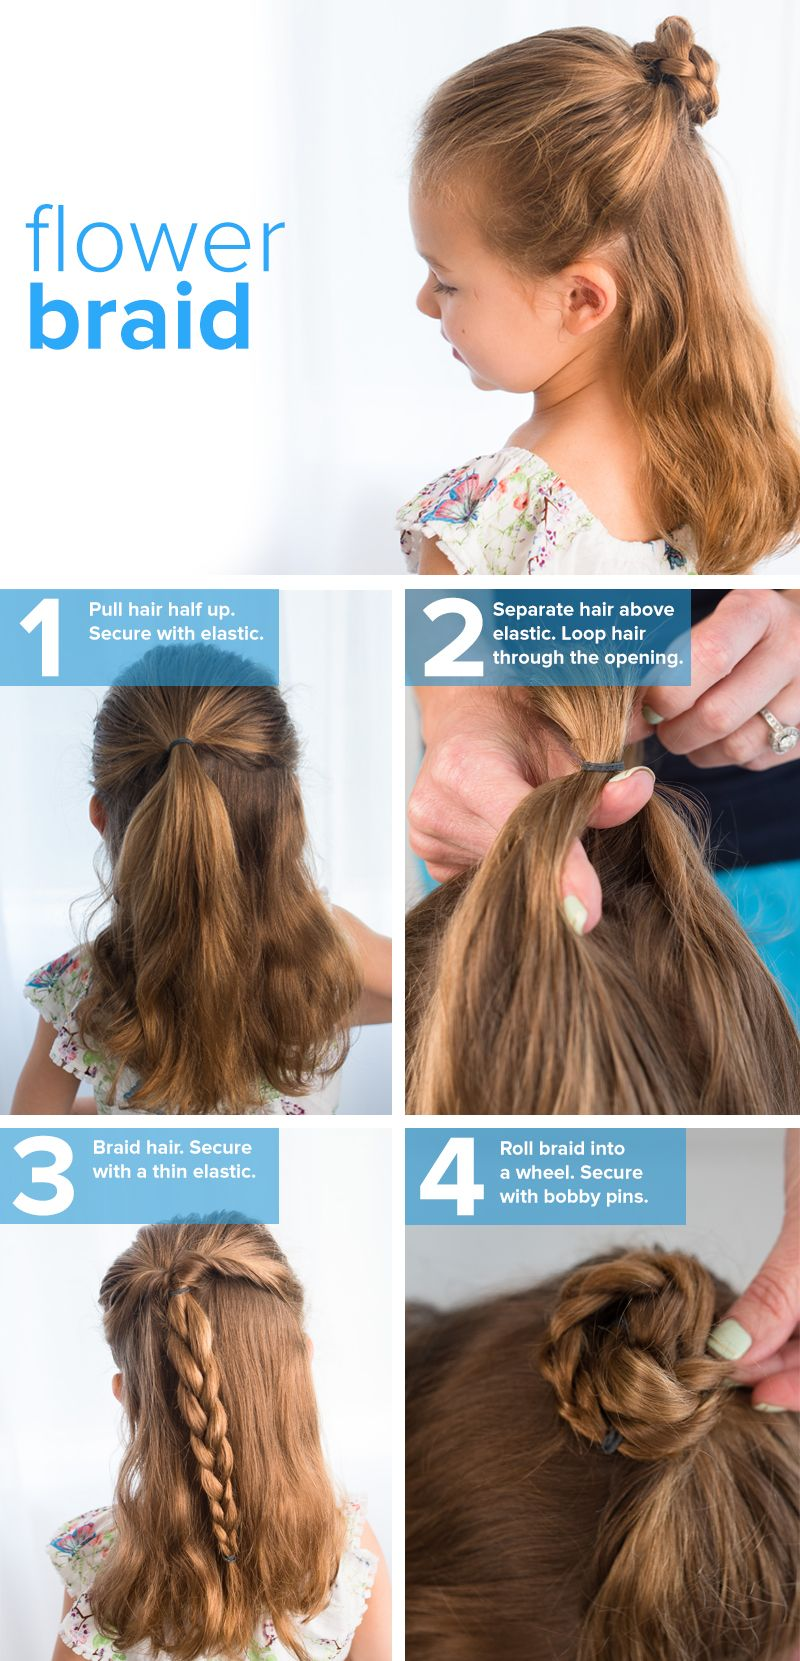 5 easy back-to school hairstyles for girls | back to school